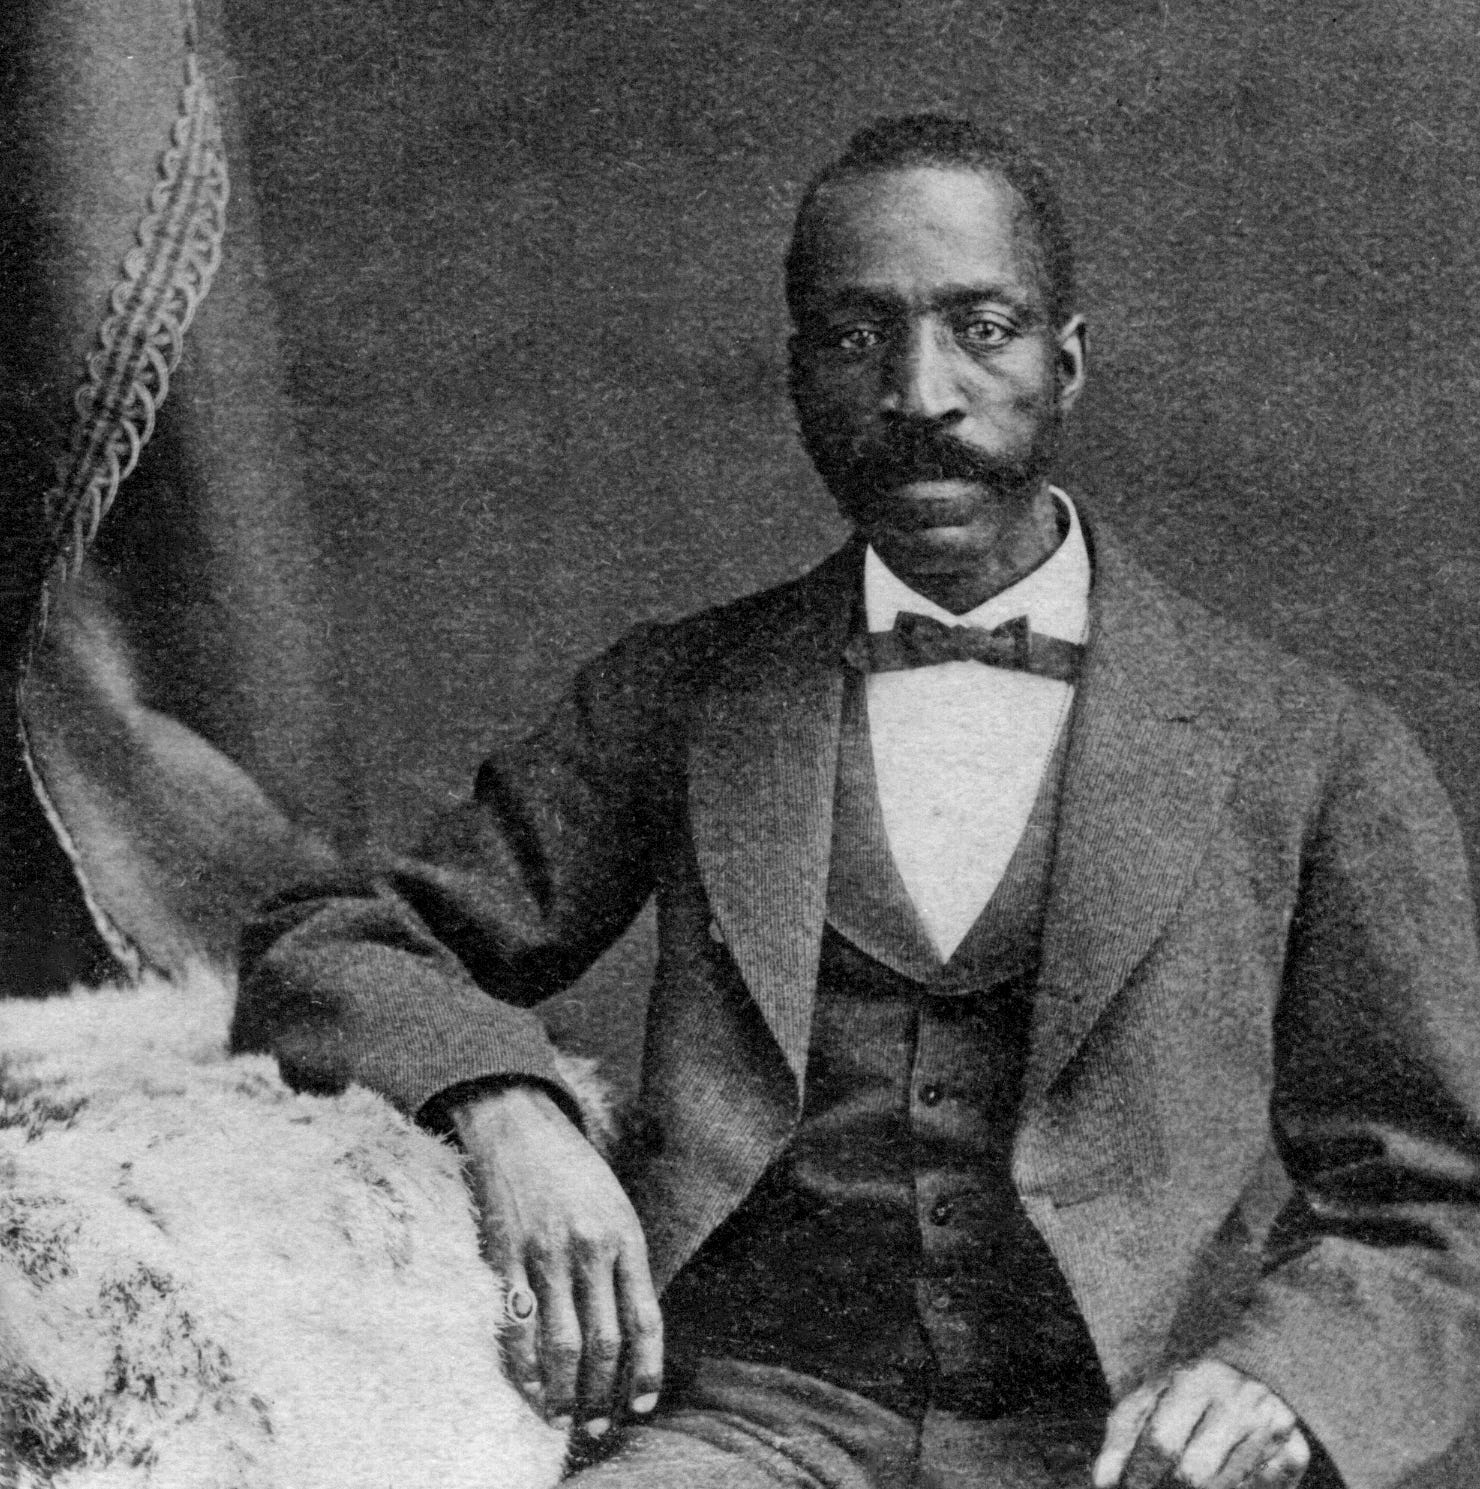 'Oregon's Black Pioneers' documentary features Salem nonprofit, cemetery